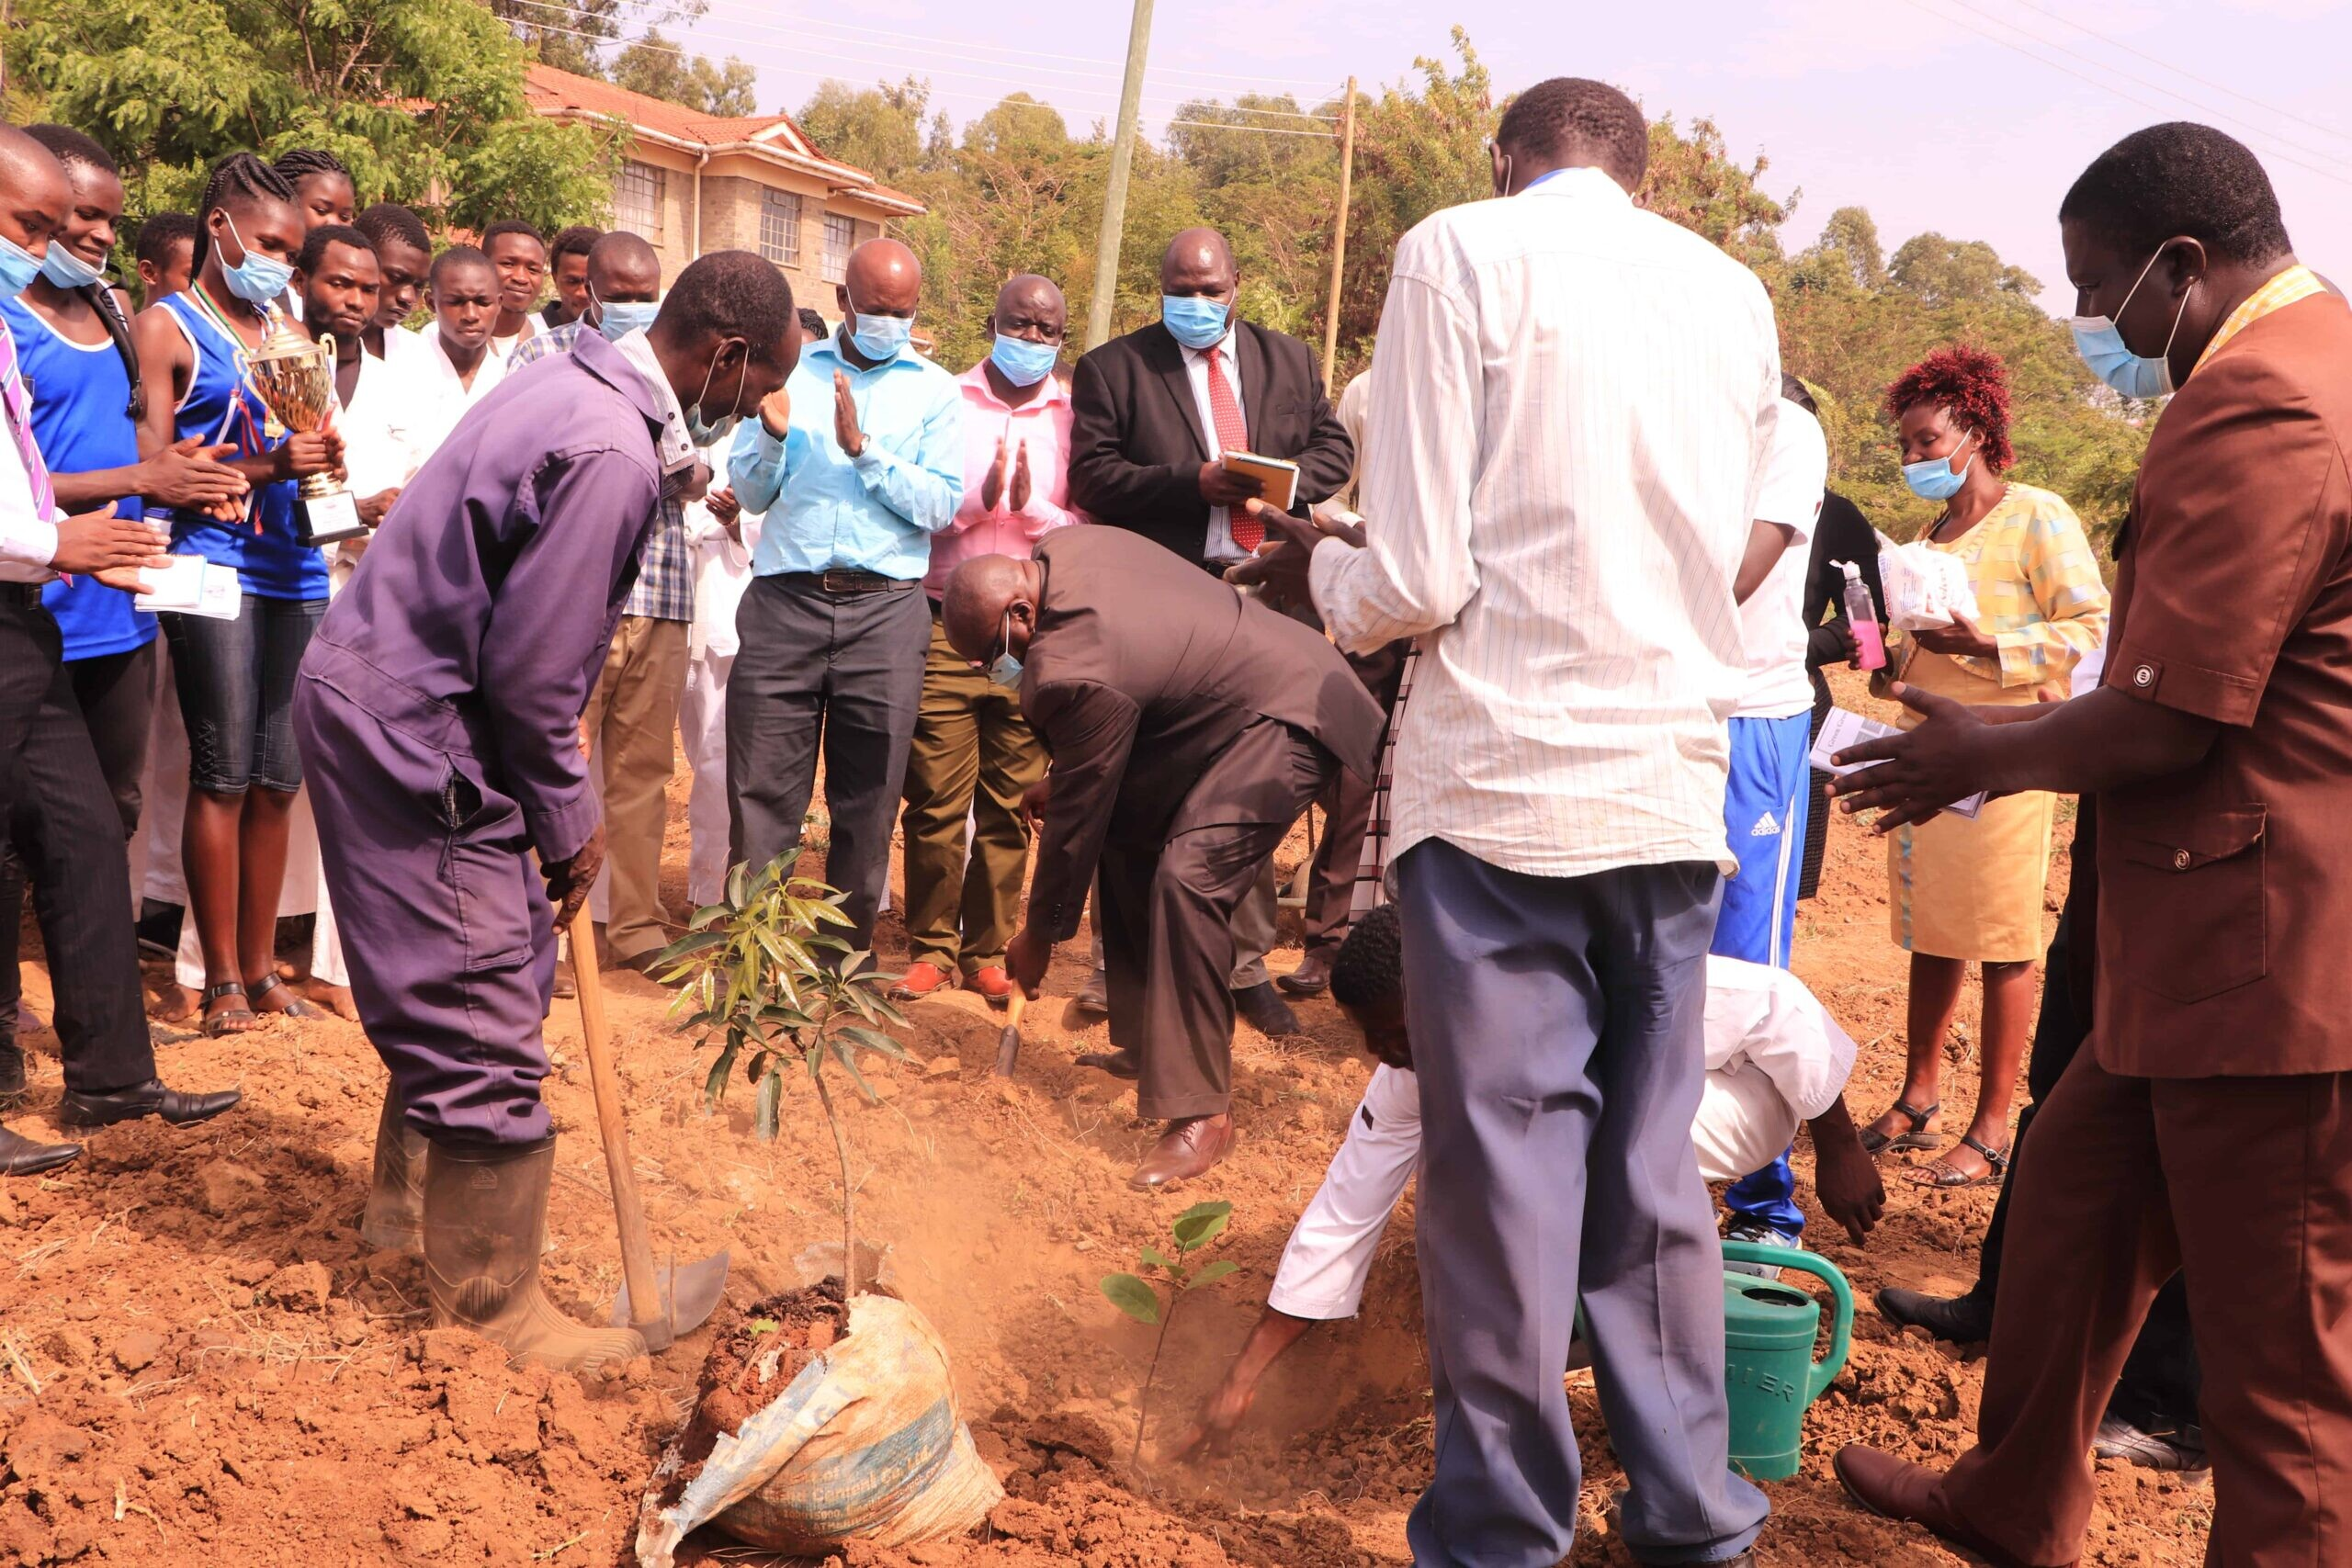 Kibabii Marks Prof. Wangari Mathai Day in an Eventful Tree Planting Exercise